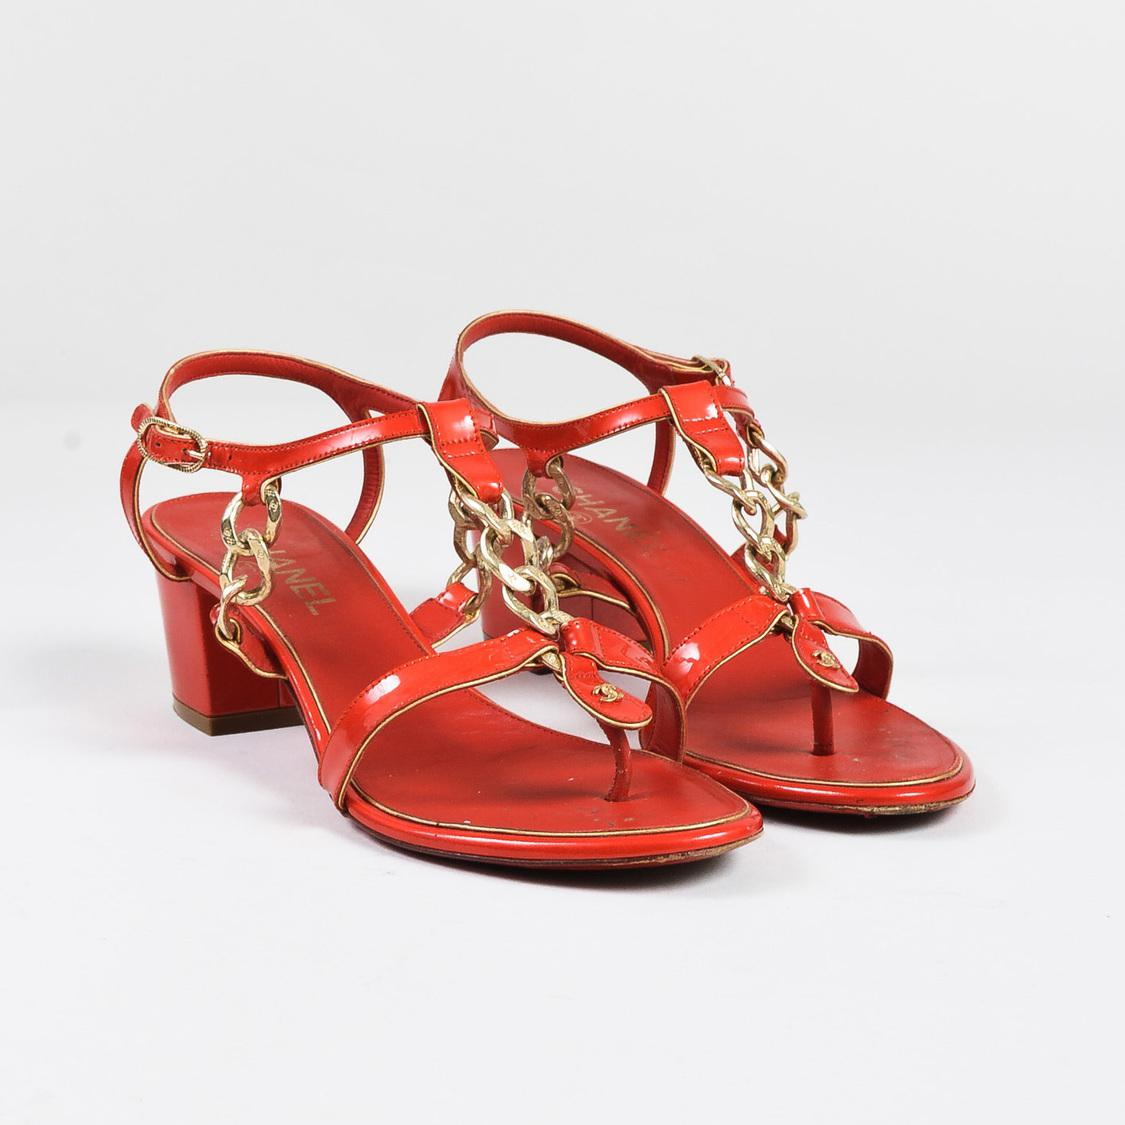 fbd4d74e6 Lyst - Chanel Red Patent Leather Chain Link Strappy Block Heel ...